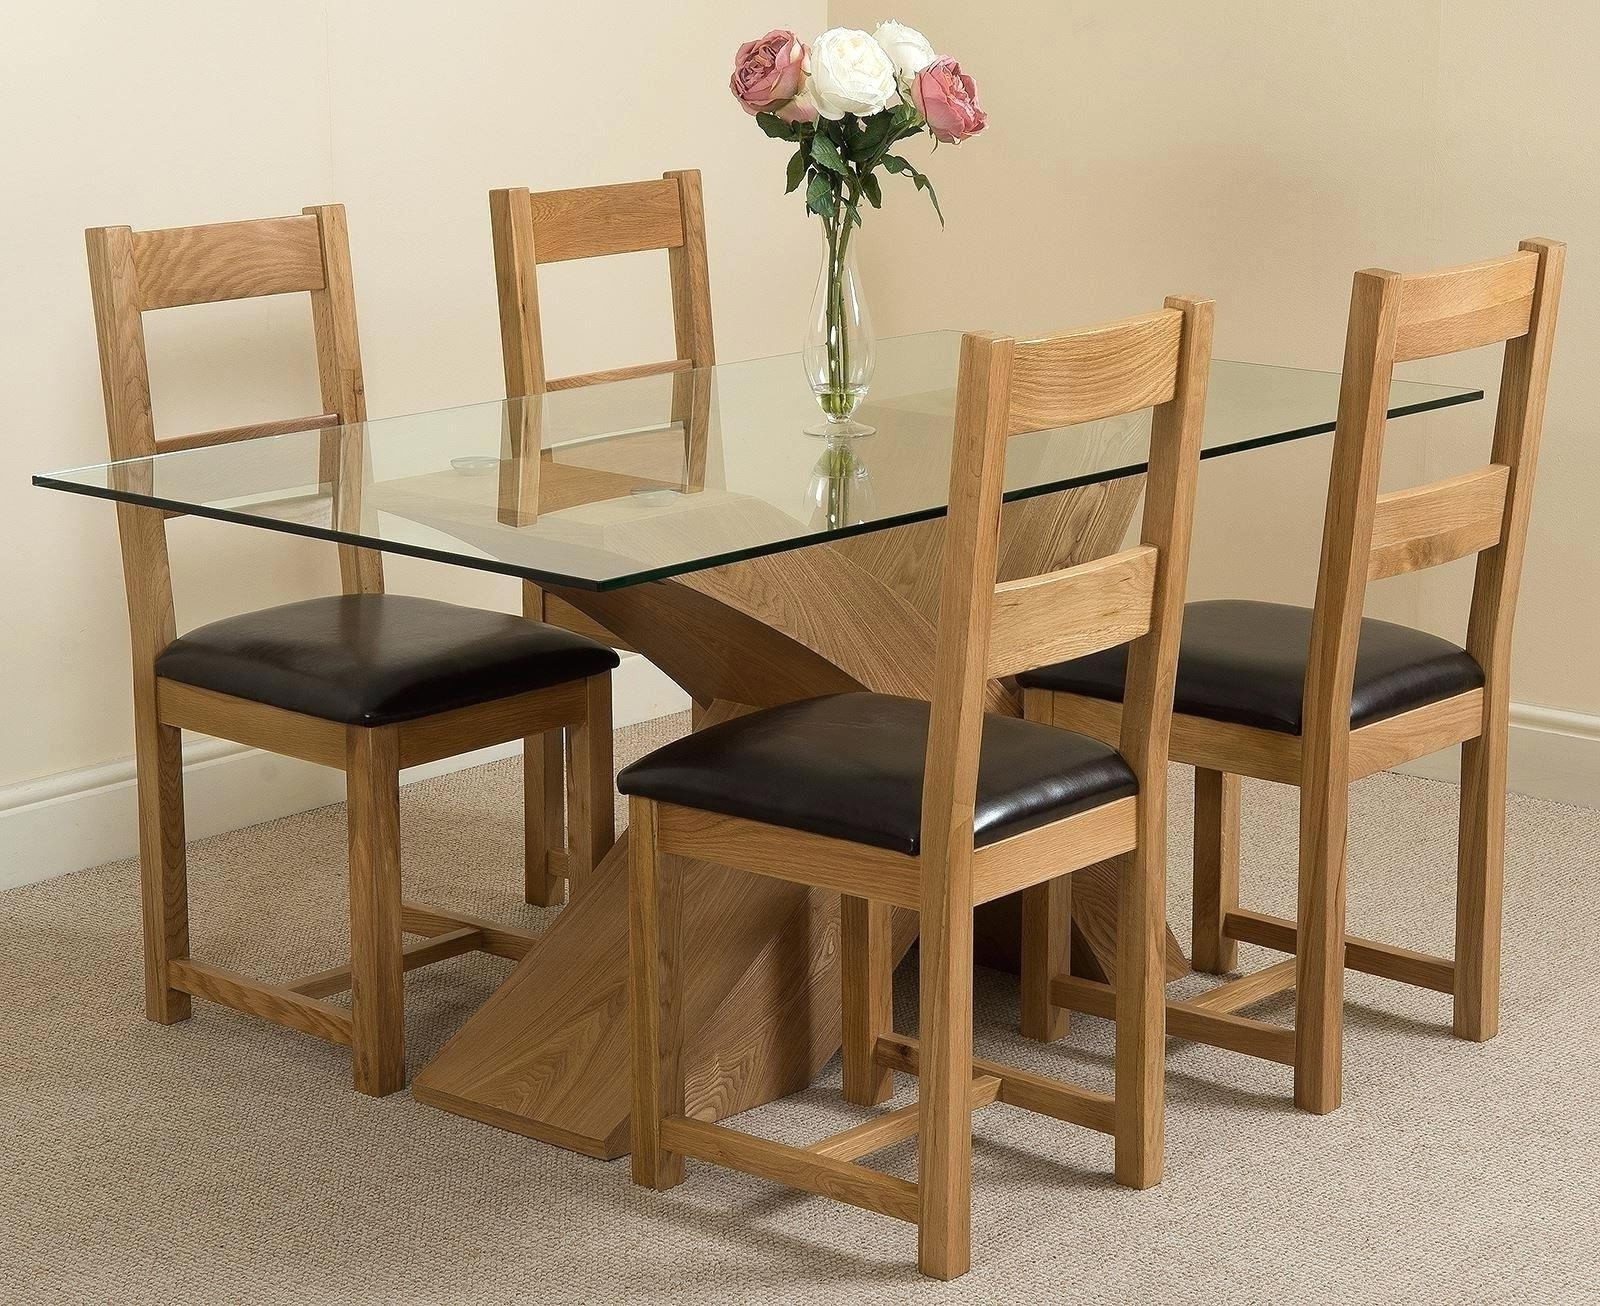 Second Hand Oak Dining Chairs Throughout Current Chair : Light Oak Dining Table And Chairs Second Hand Furniture Uk (View 22 of 25)